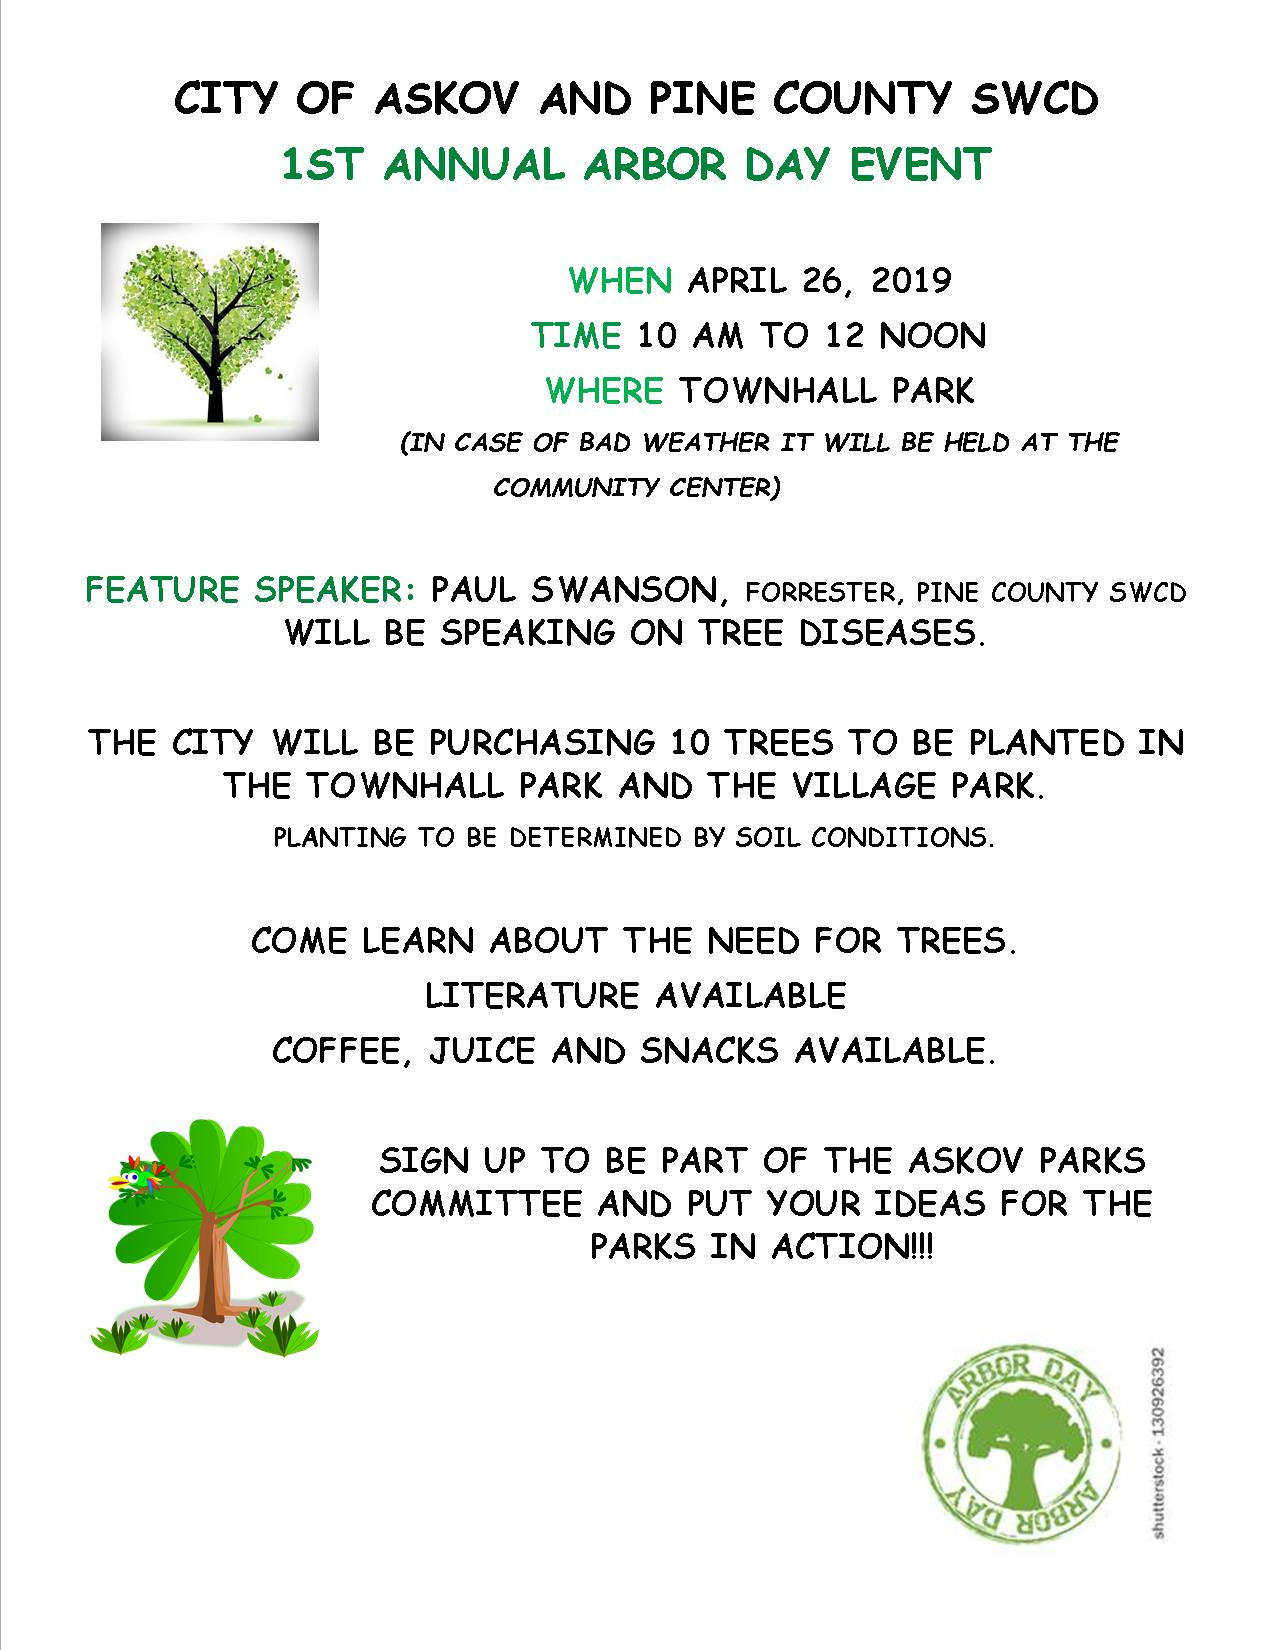 Arbor Day event flyer